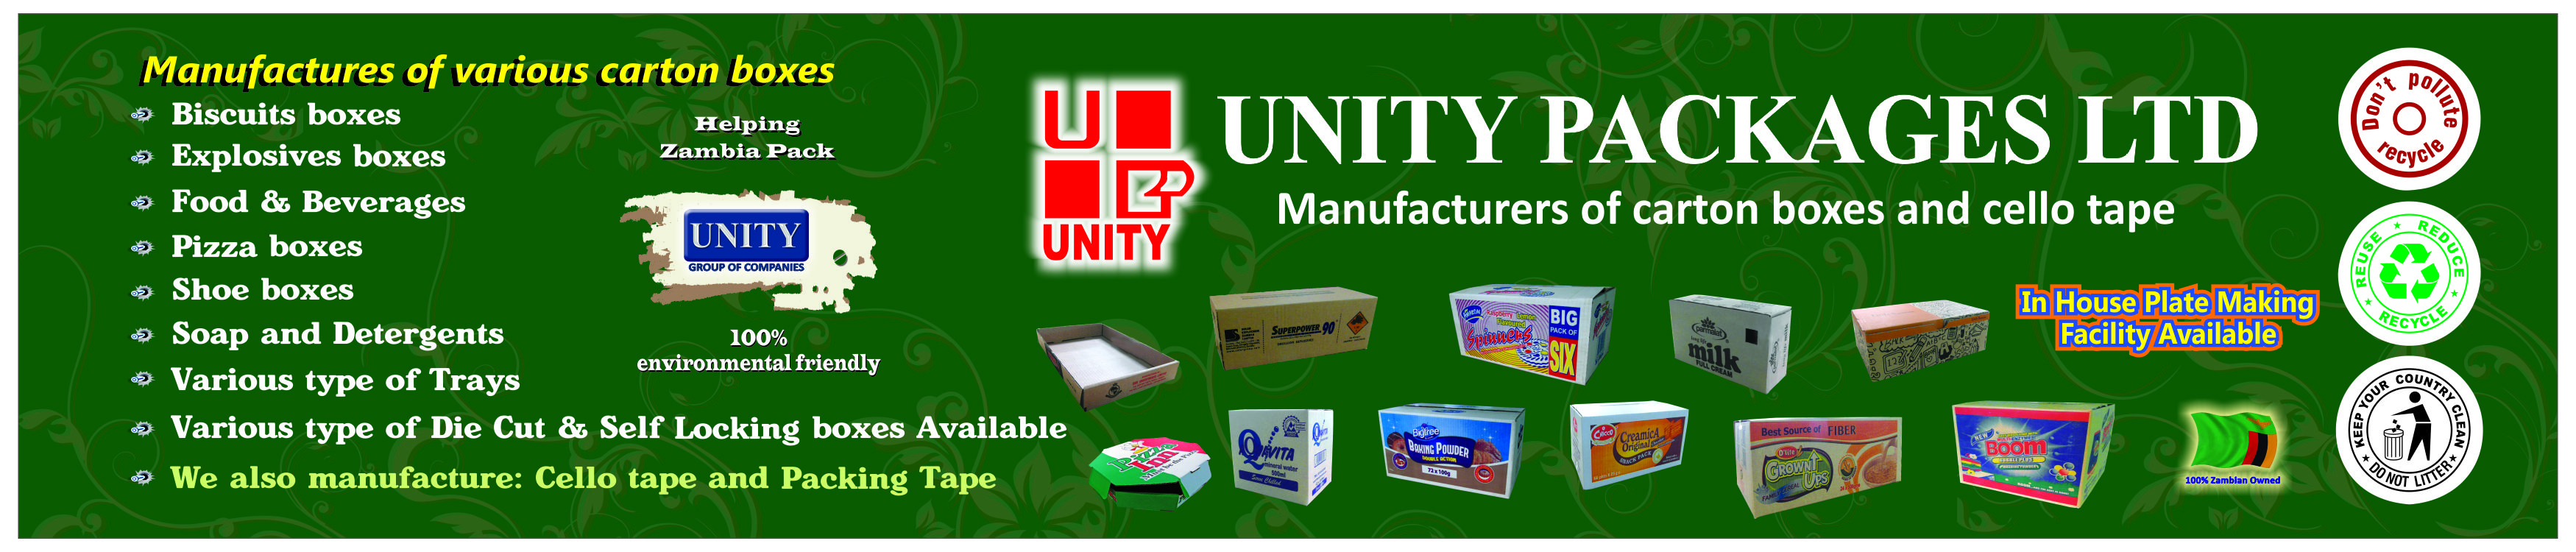 UNITY CONTAINER ADVERT - 3